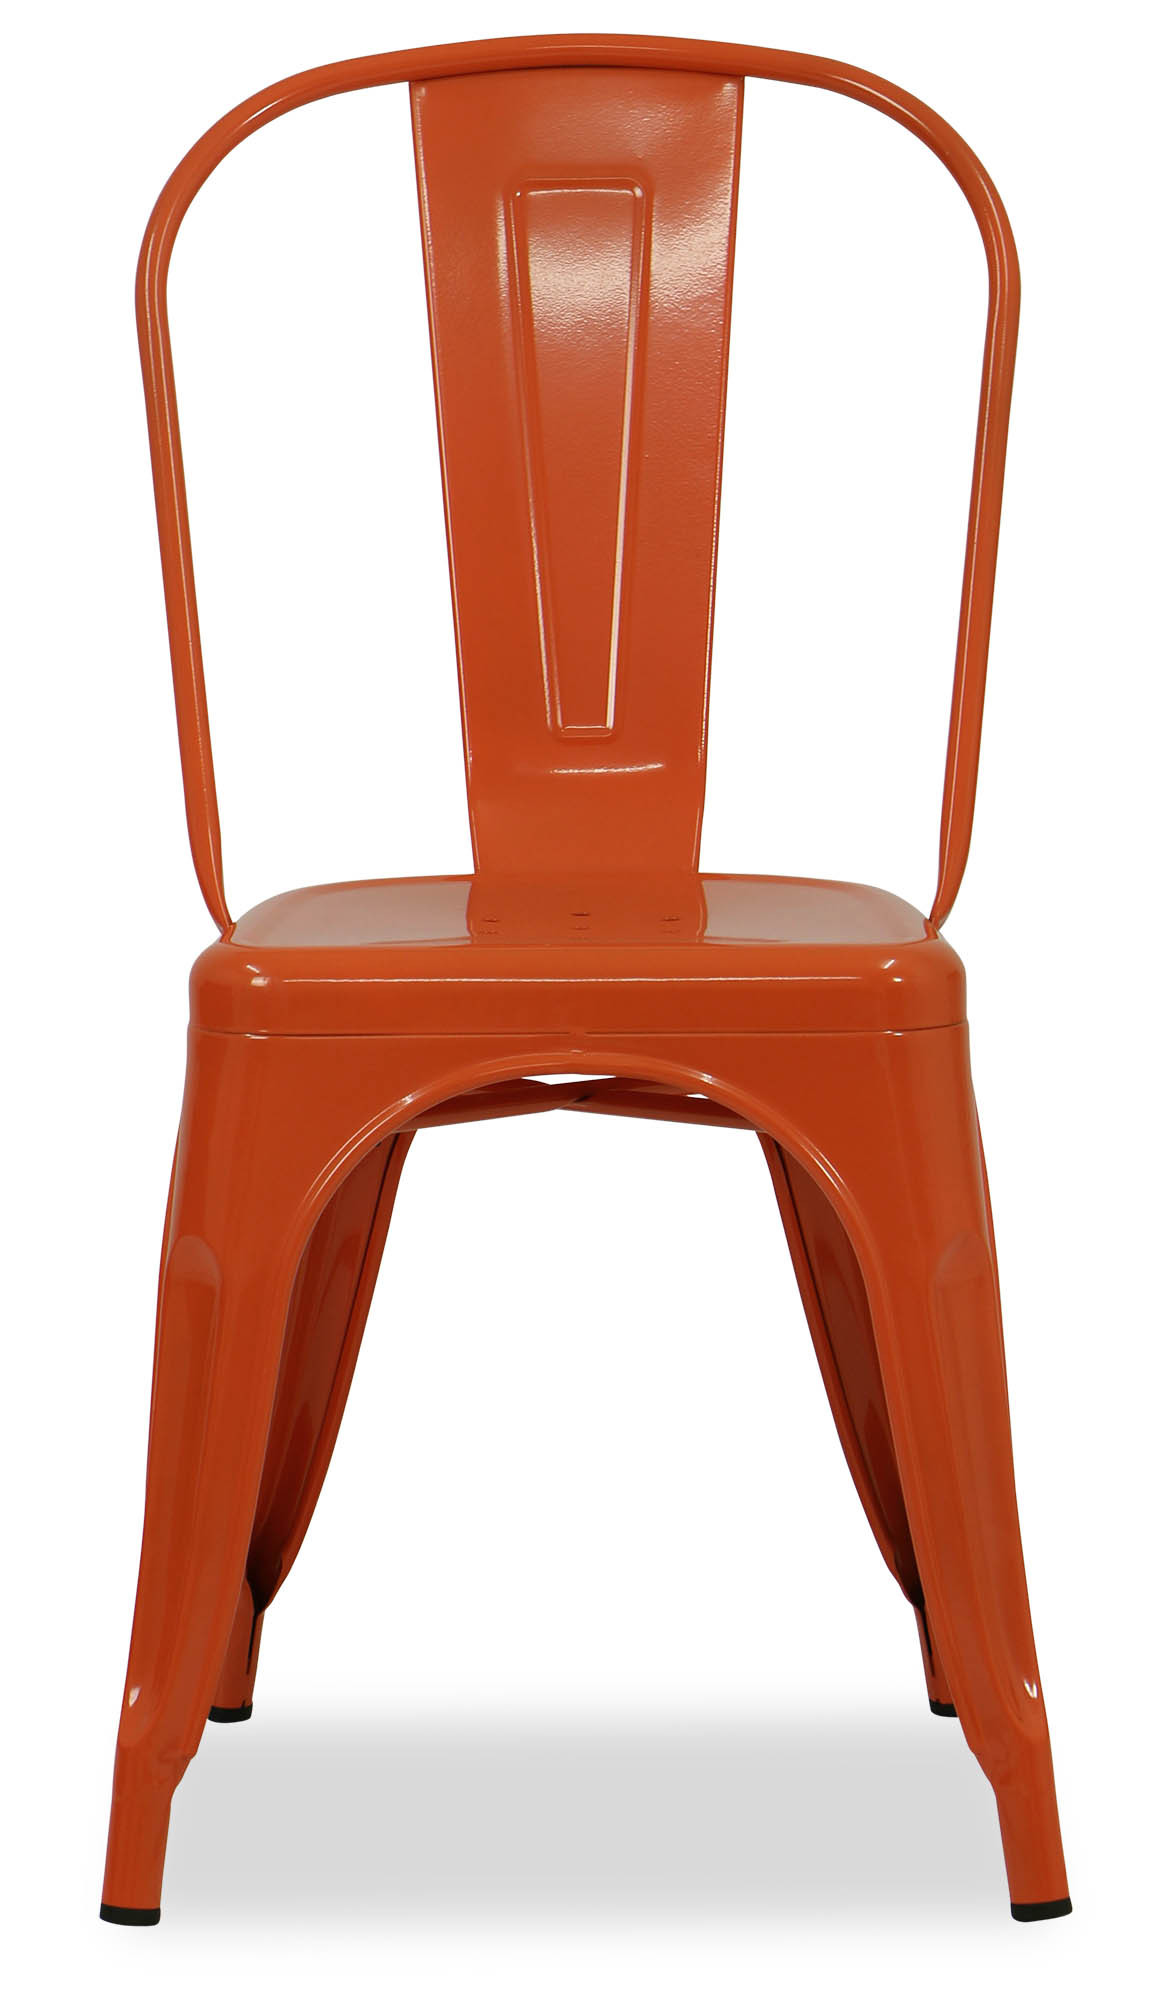 Metal Chairs Retro Metal Chair Orange Dining Chairs Dining Room